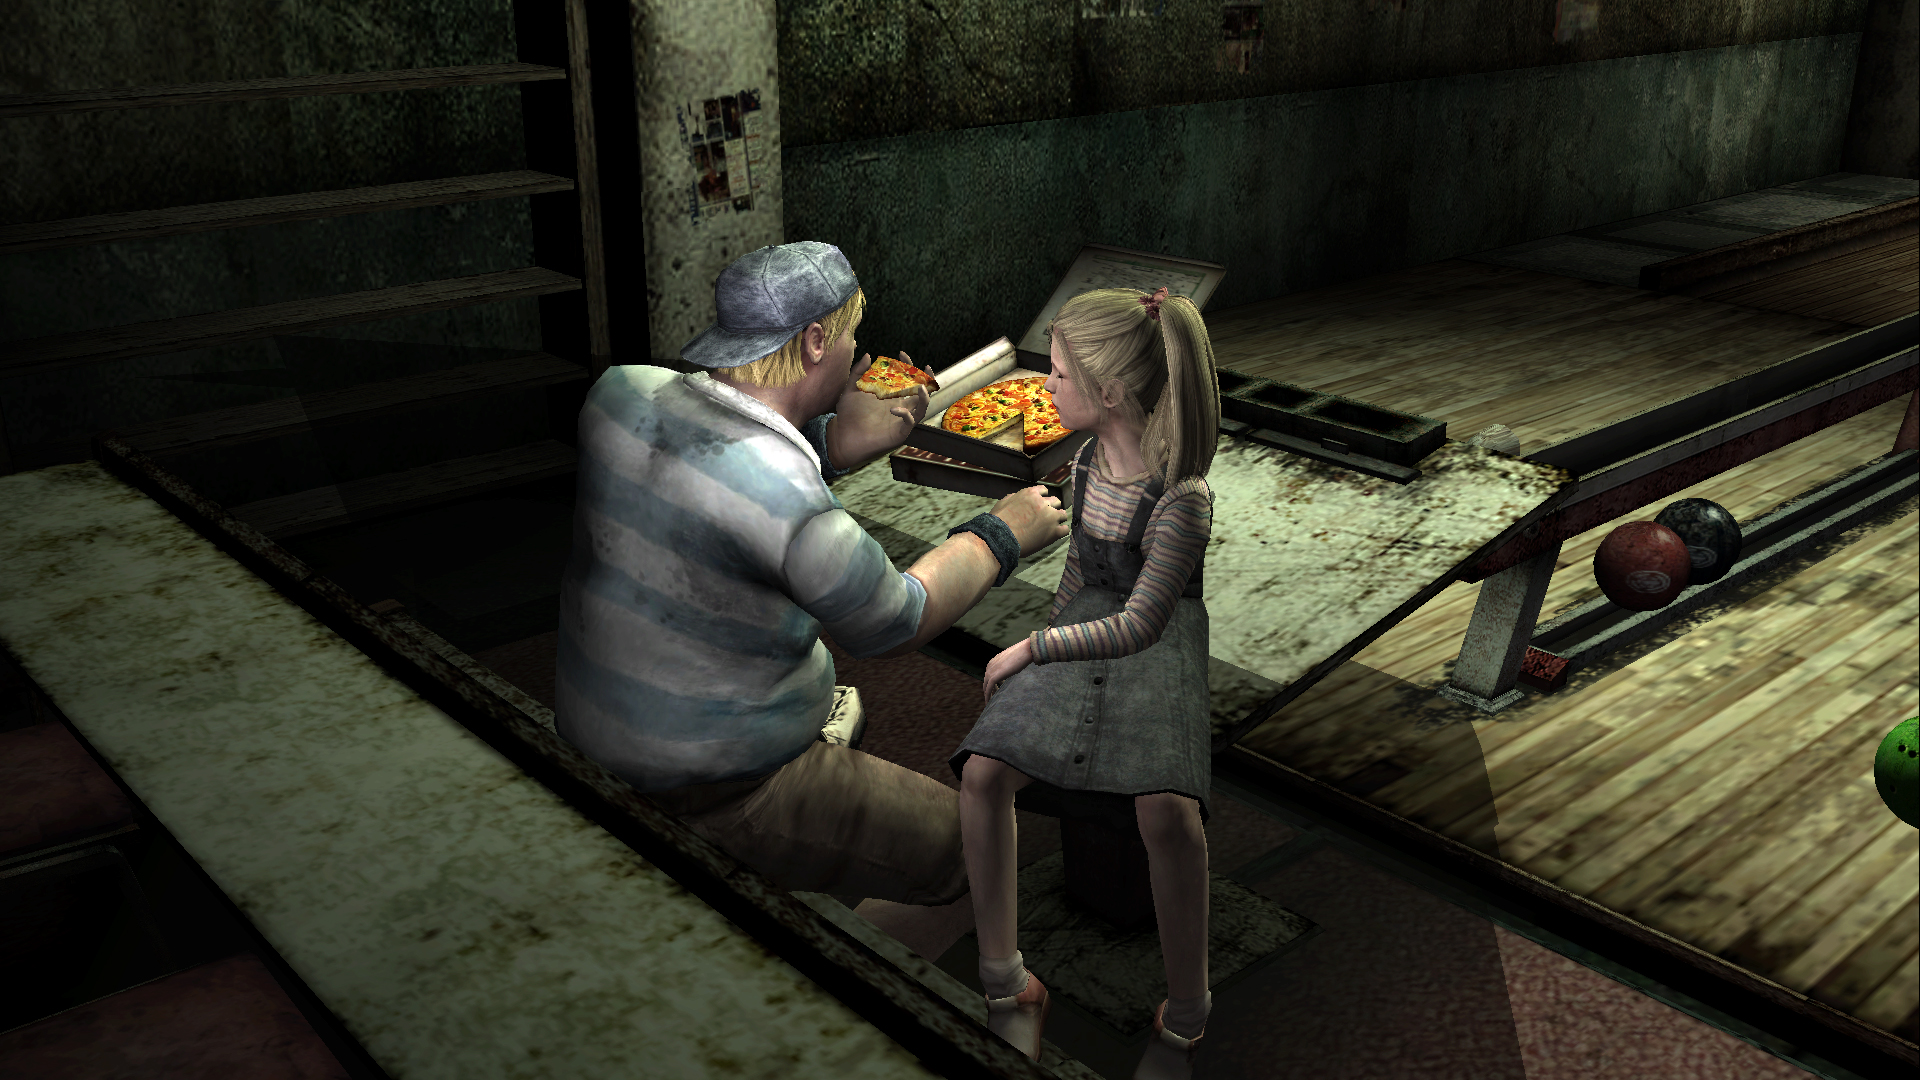 Pizza in Silent Hill 2